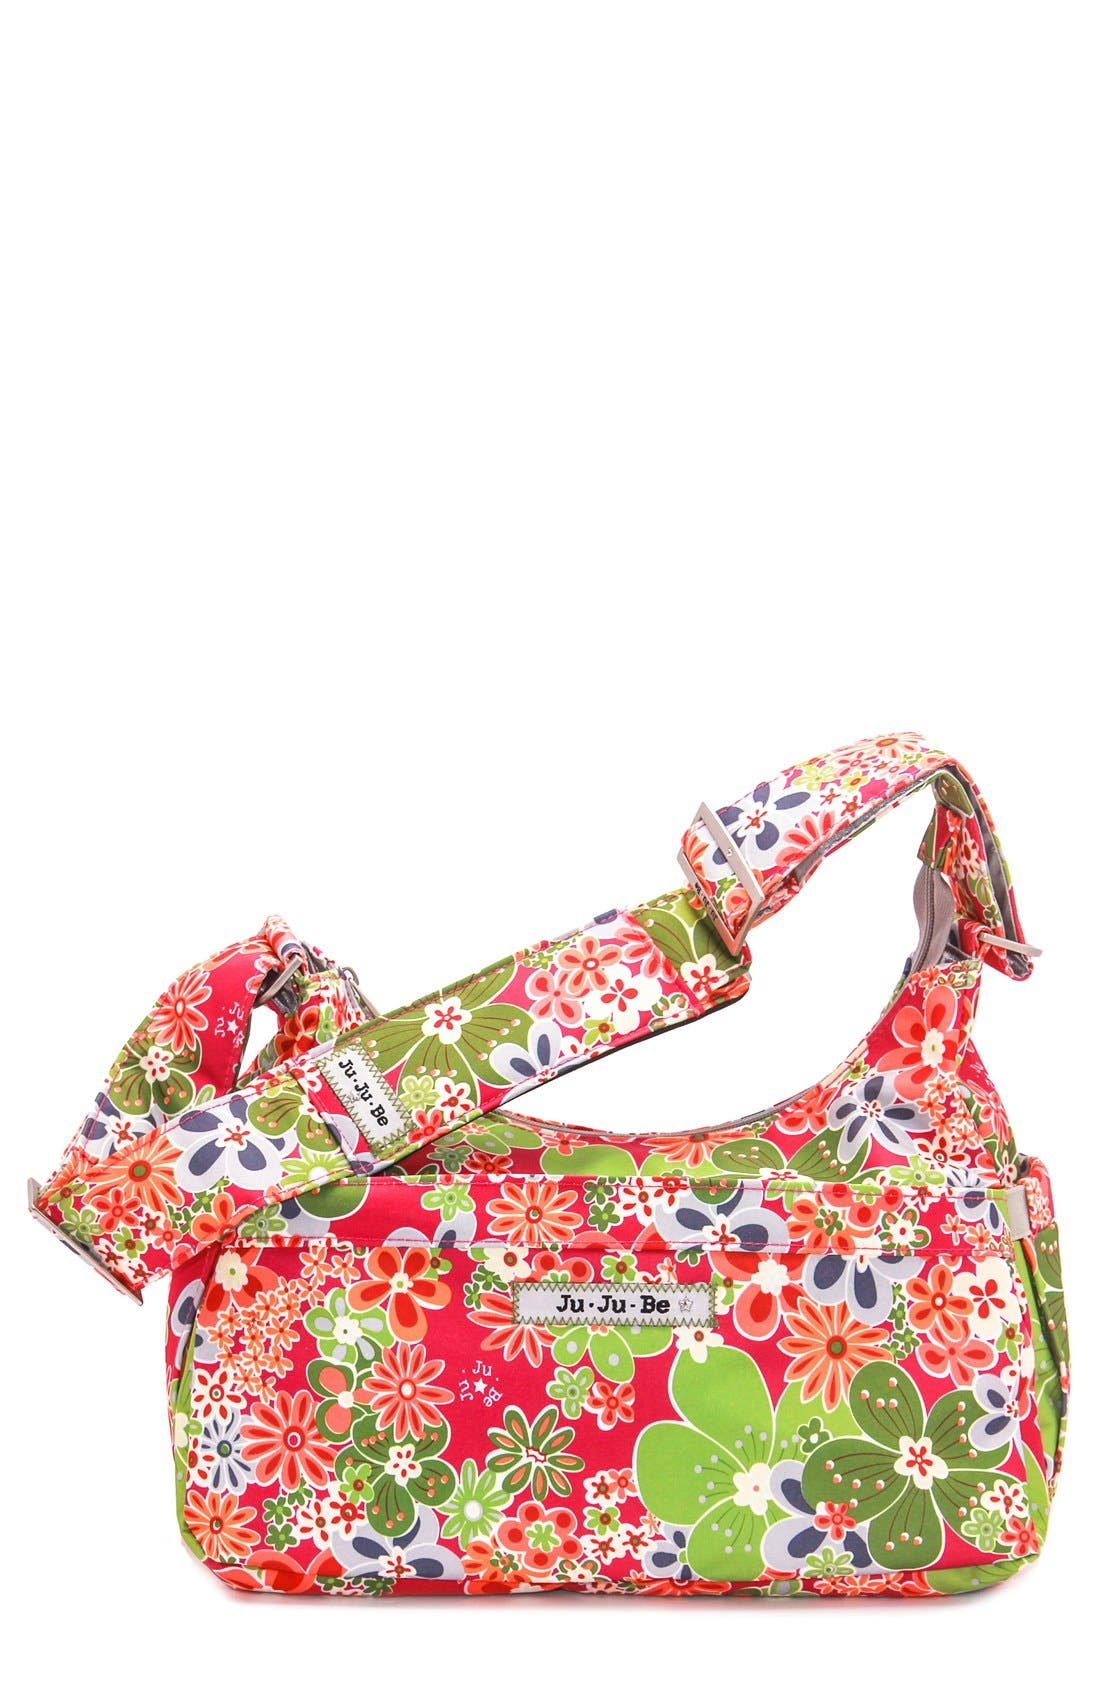 'HoboBe' Diaper Bag,                             Main thumbnail 1, color,                             670